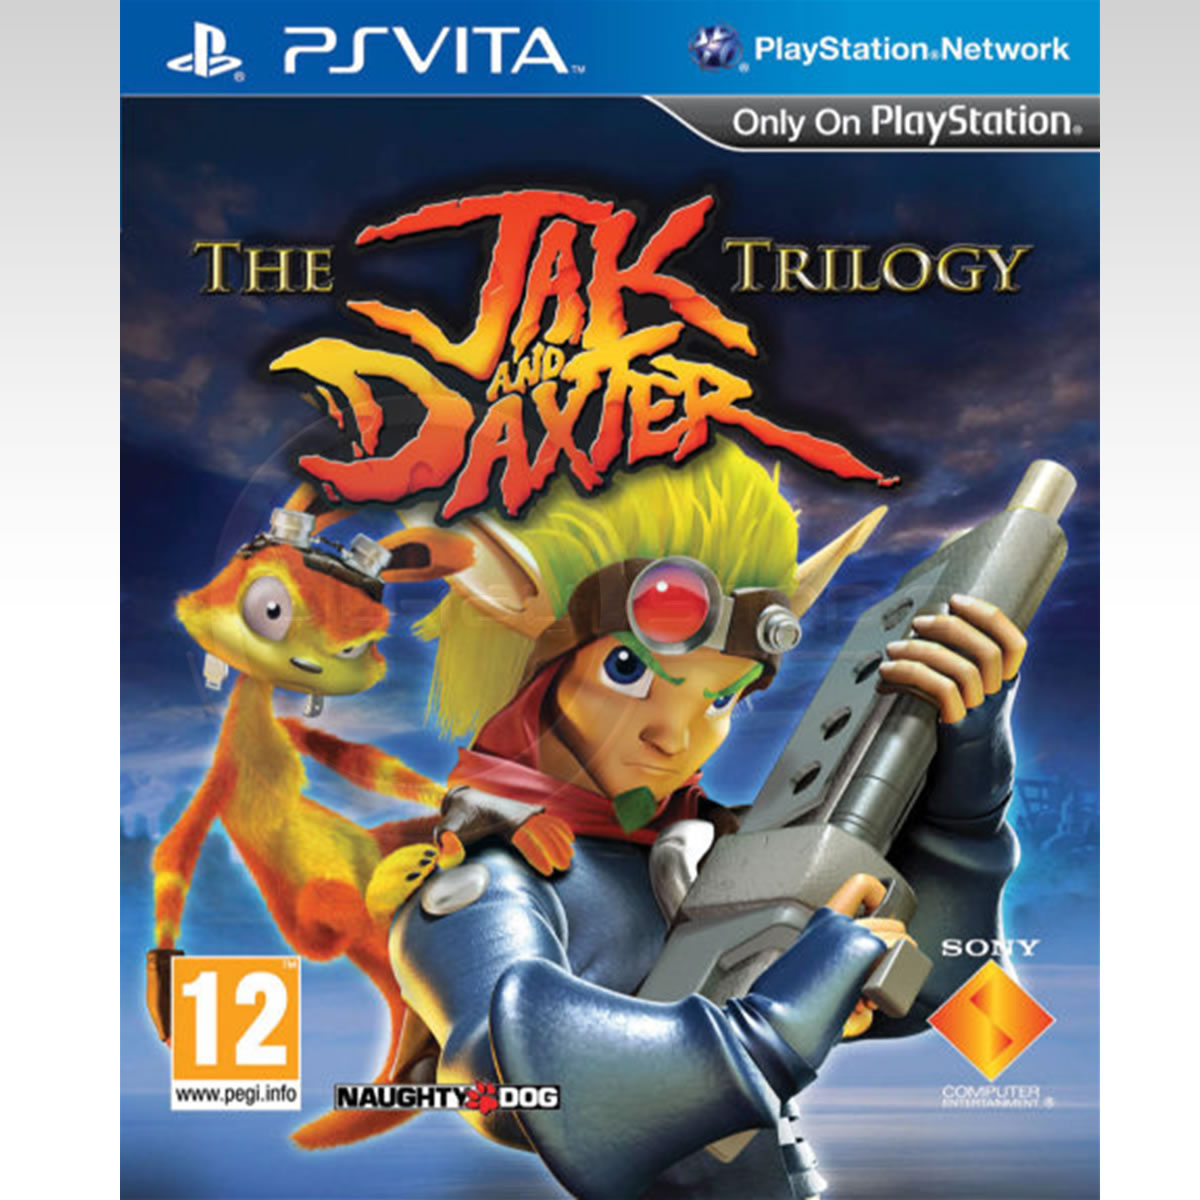 THE JAK AND DAXTER TRILOGY (PS VITA)